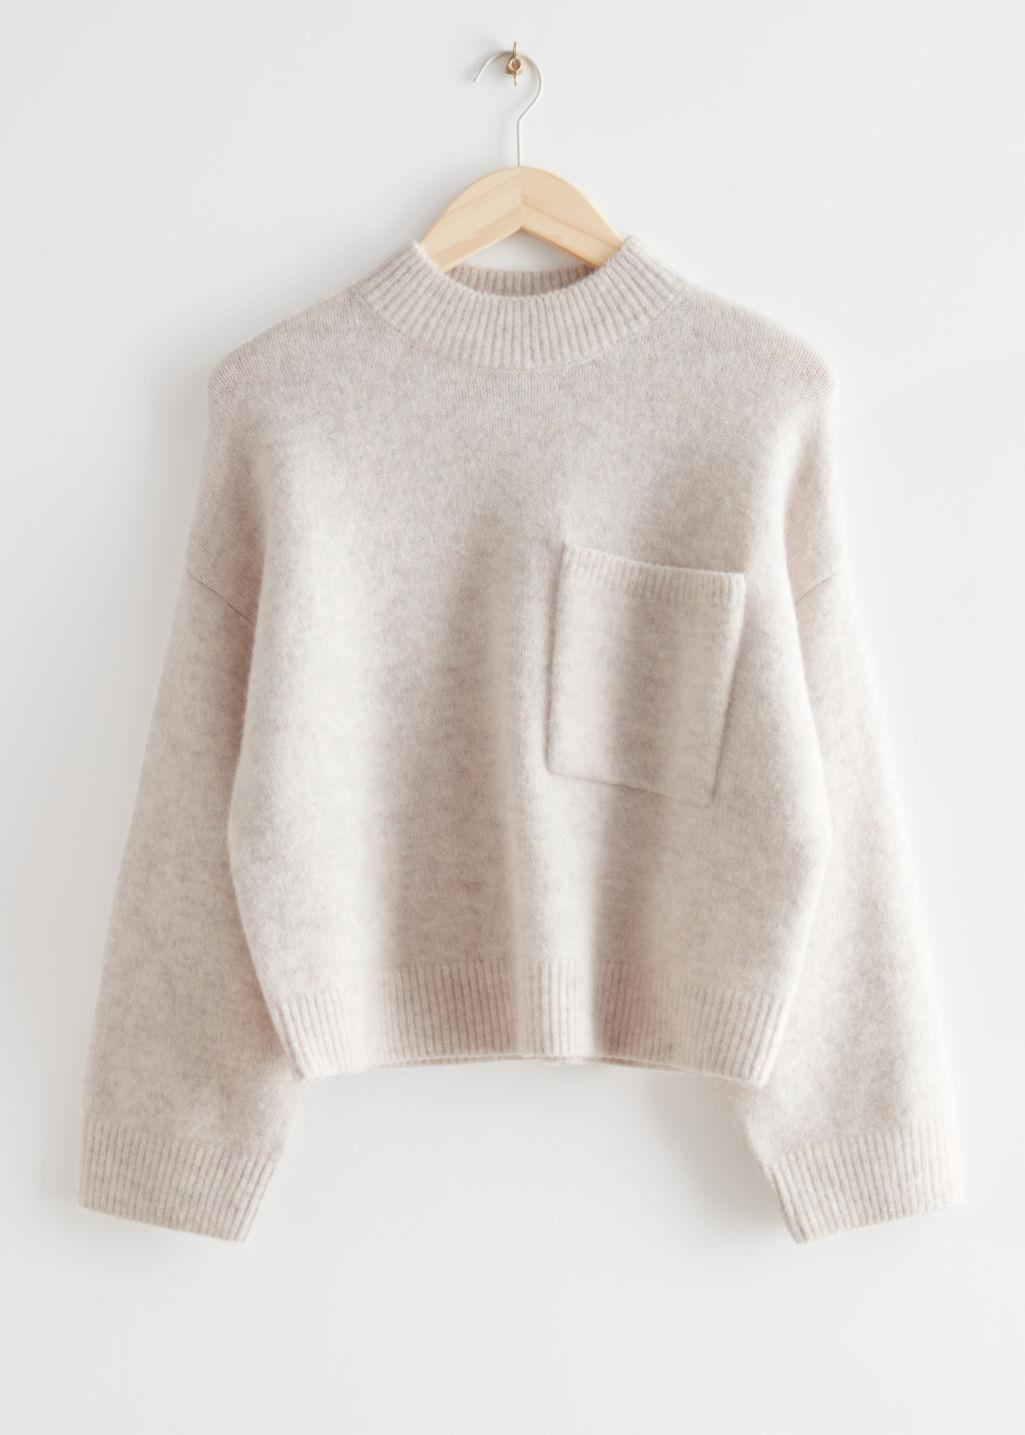 Chest Pocket Knit Sweater